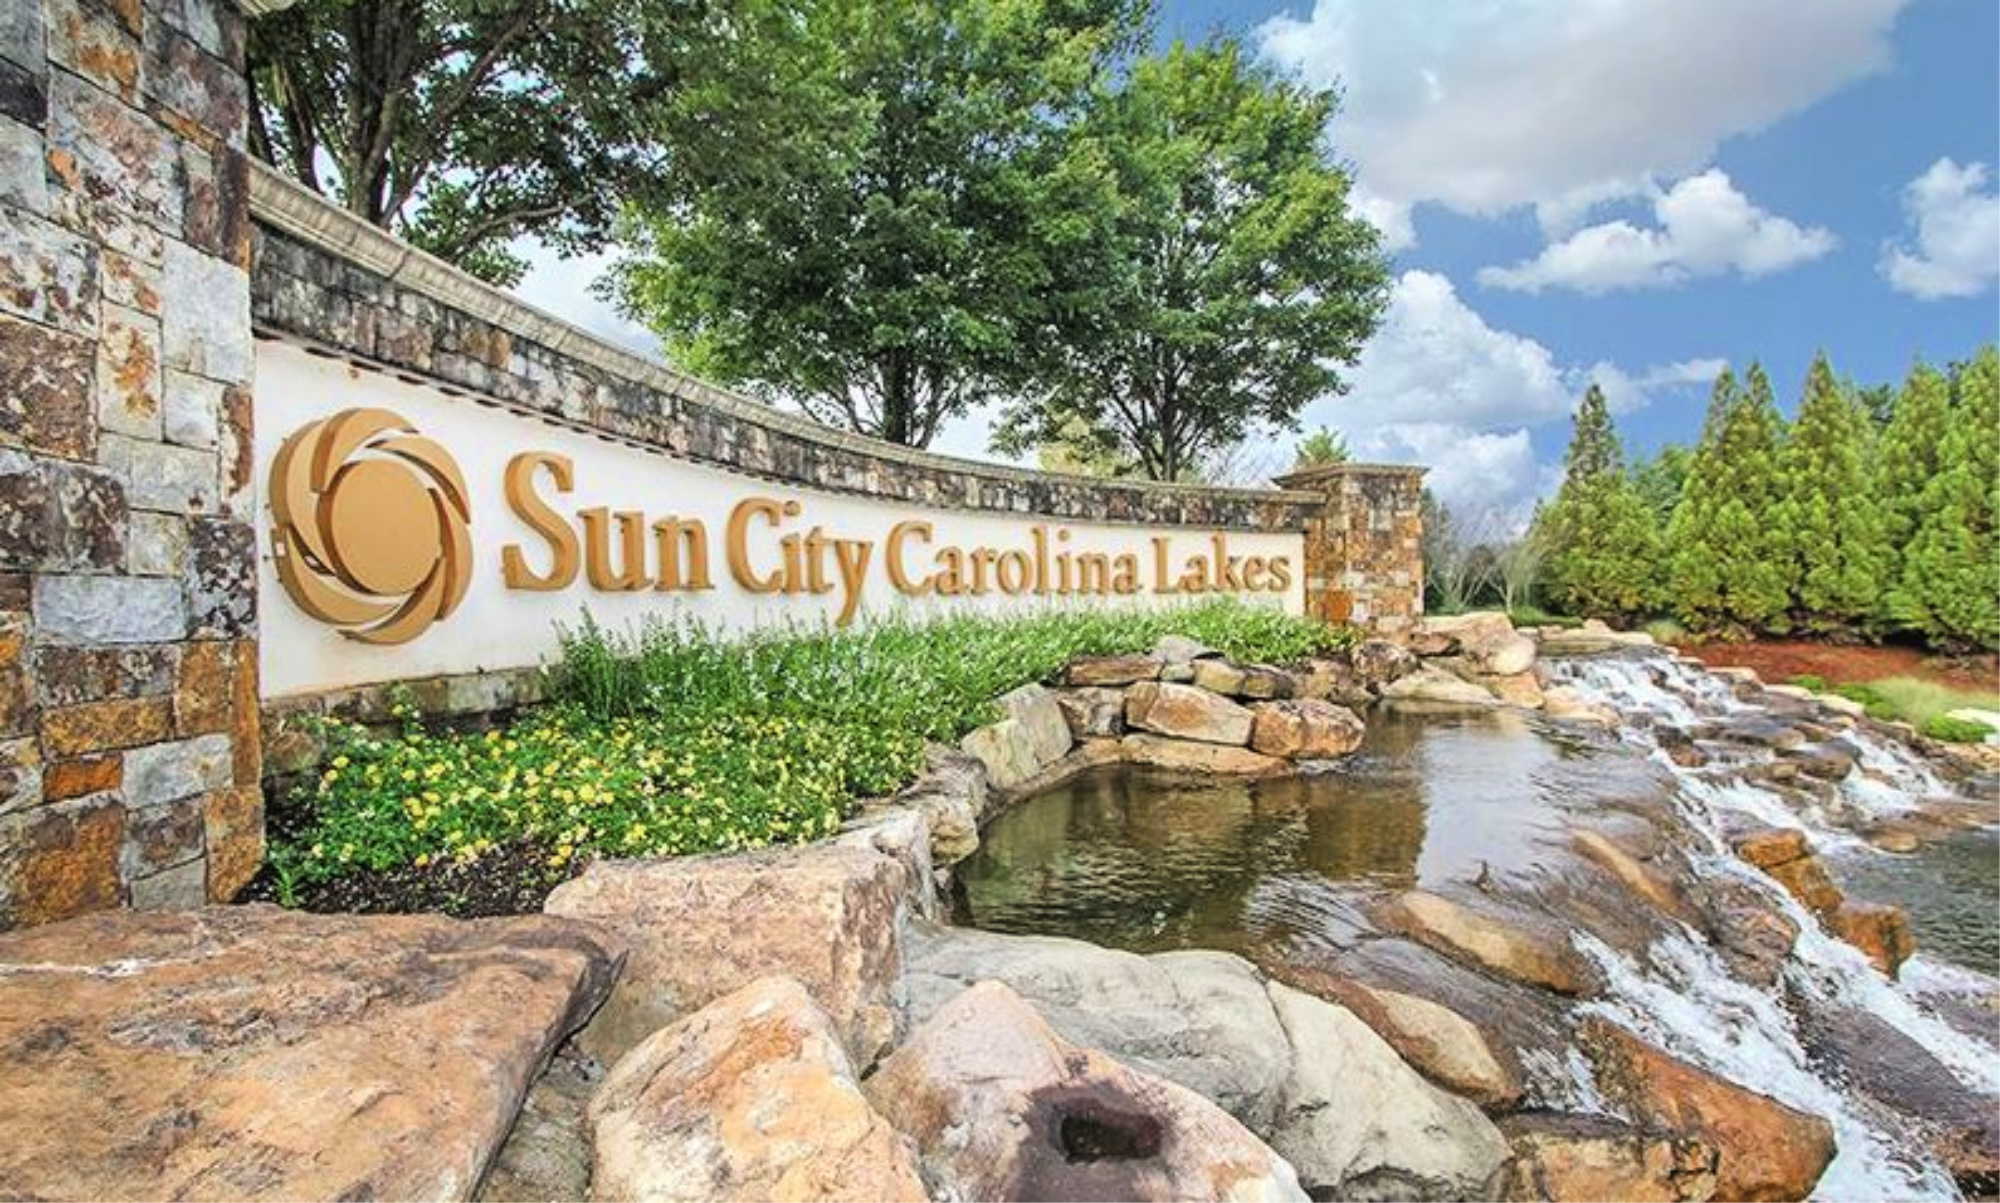 Sun City Carolina Lakes